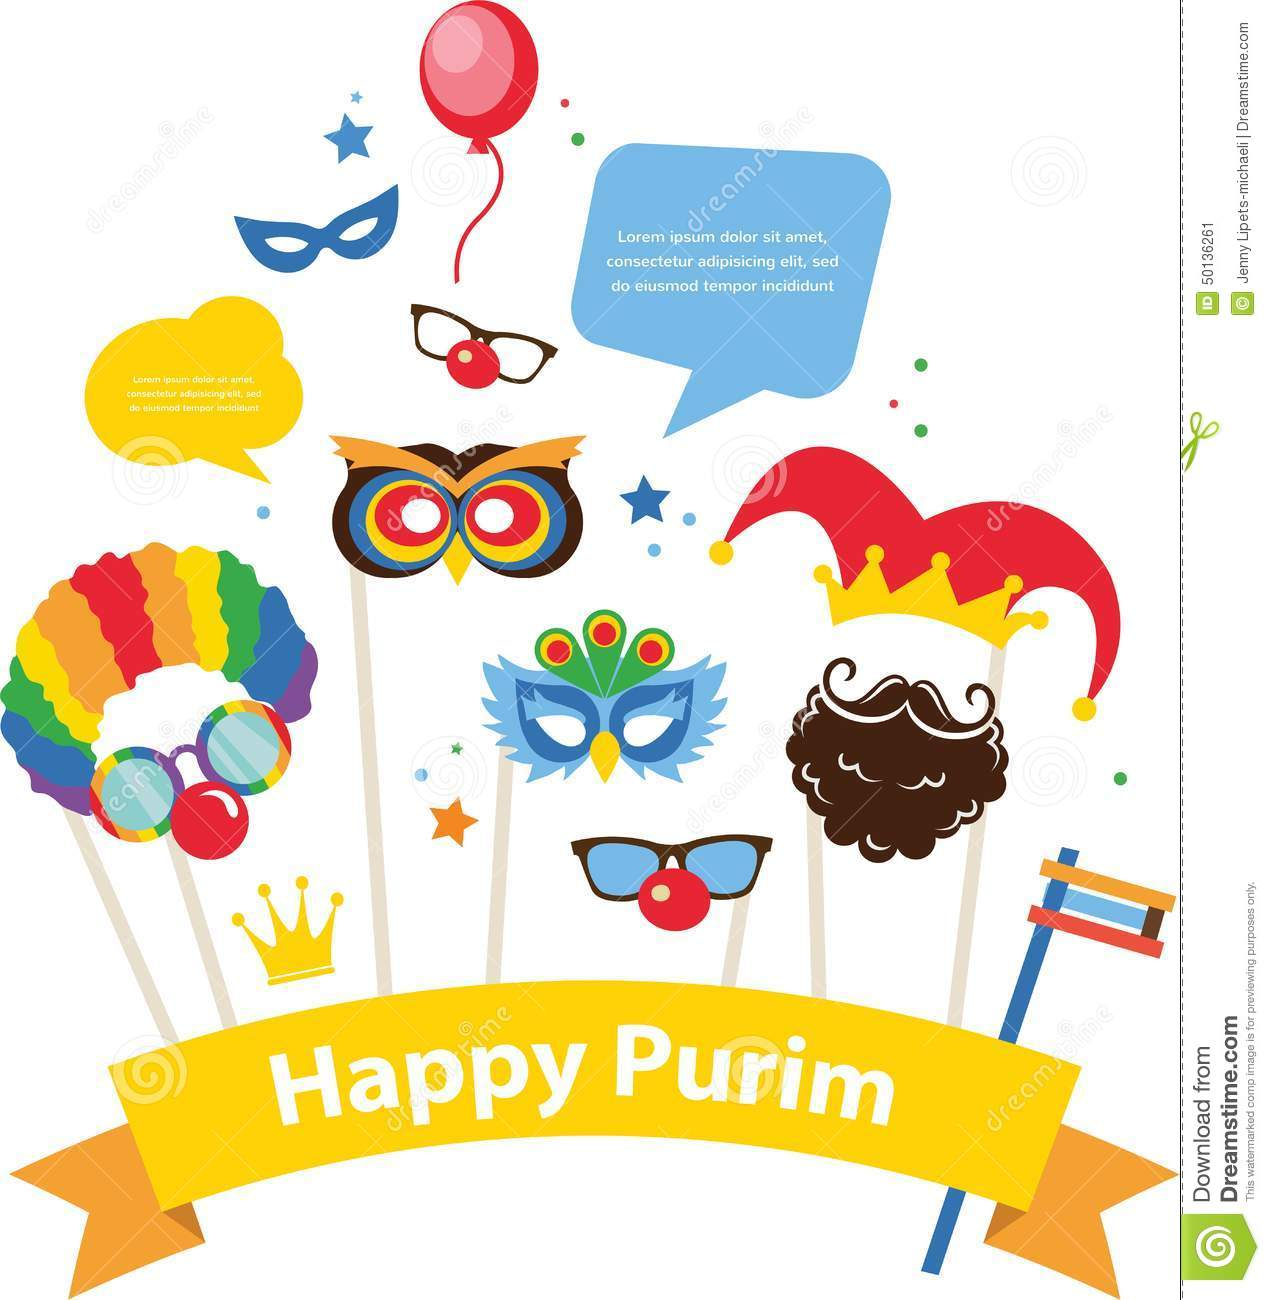 Clip Art Purim Clip Art purim stock illustrations 799 vectors design for jewish holiday with masks and image